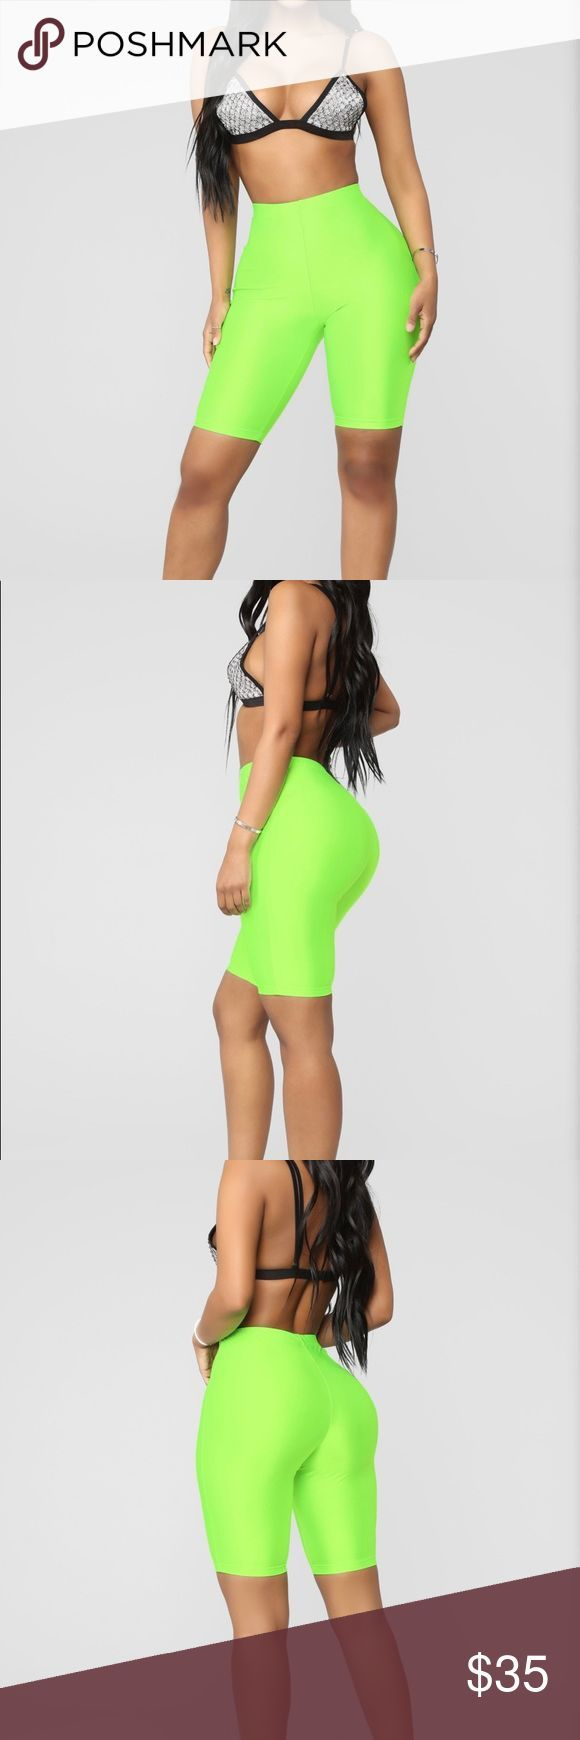 Neon Green Biker Shorts Knee length neon green biker shorts has stretch and are …   – Women's Style